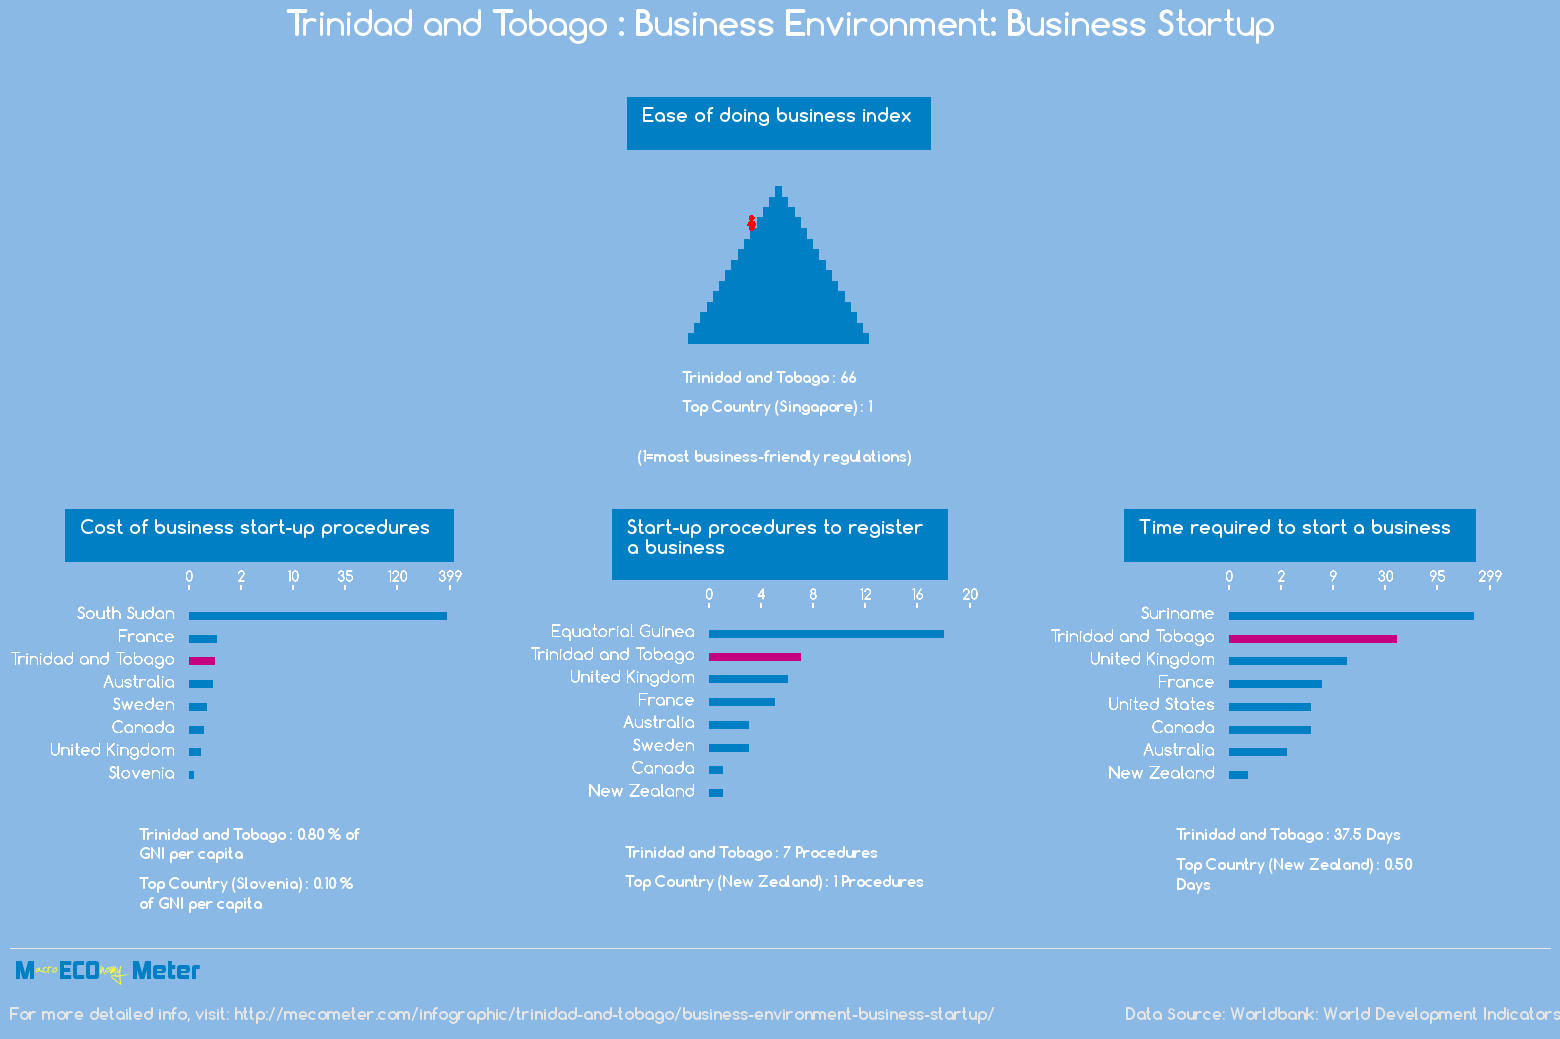 Trinidad and Tobago : Business Environment: Business Startup